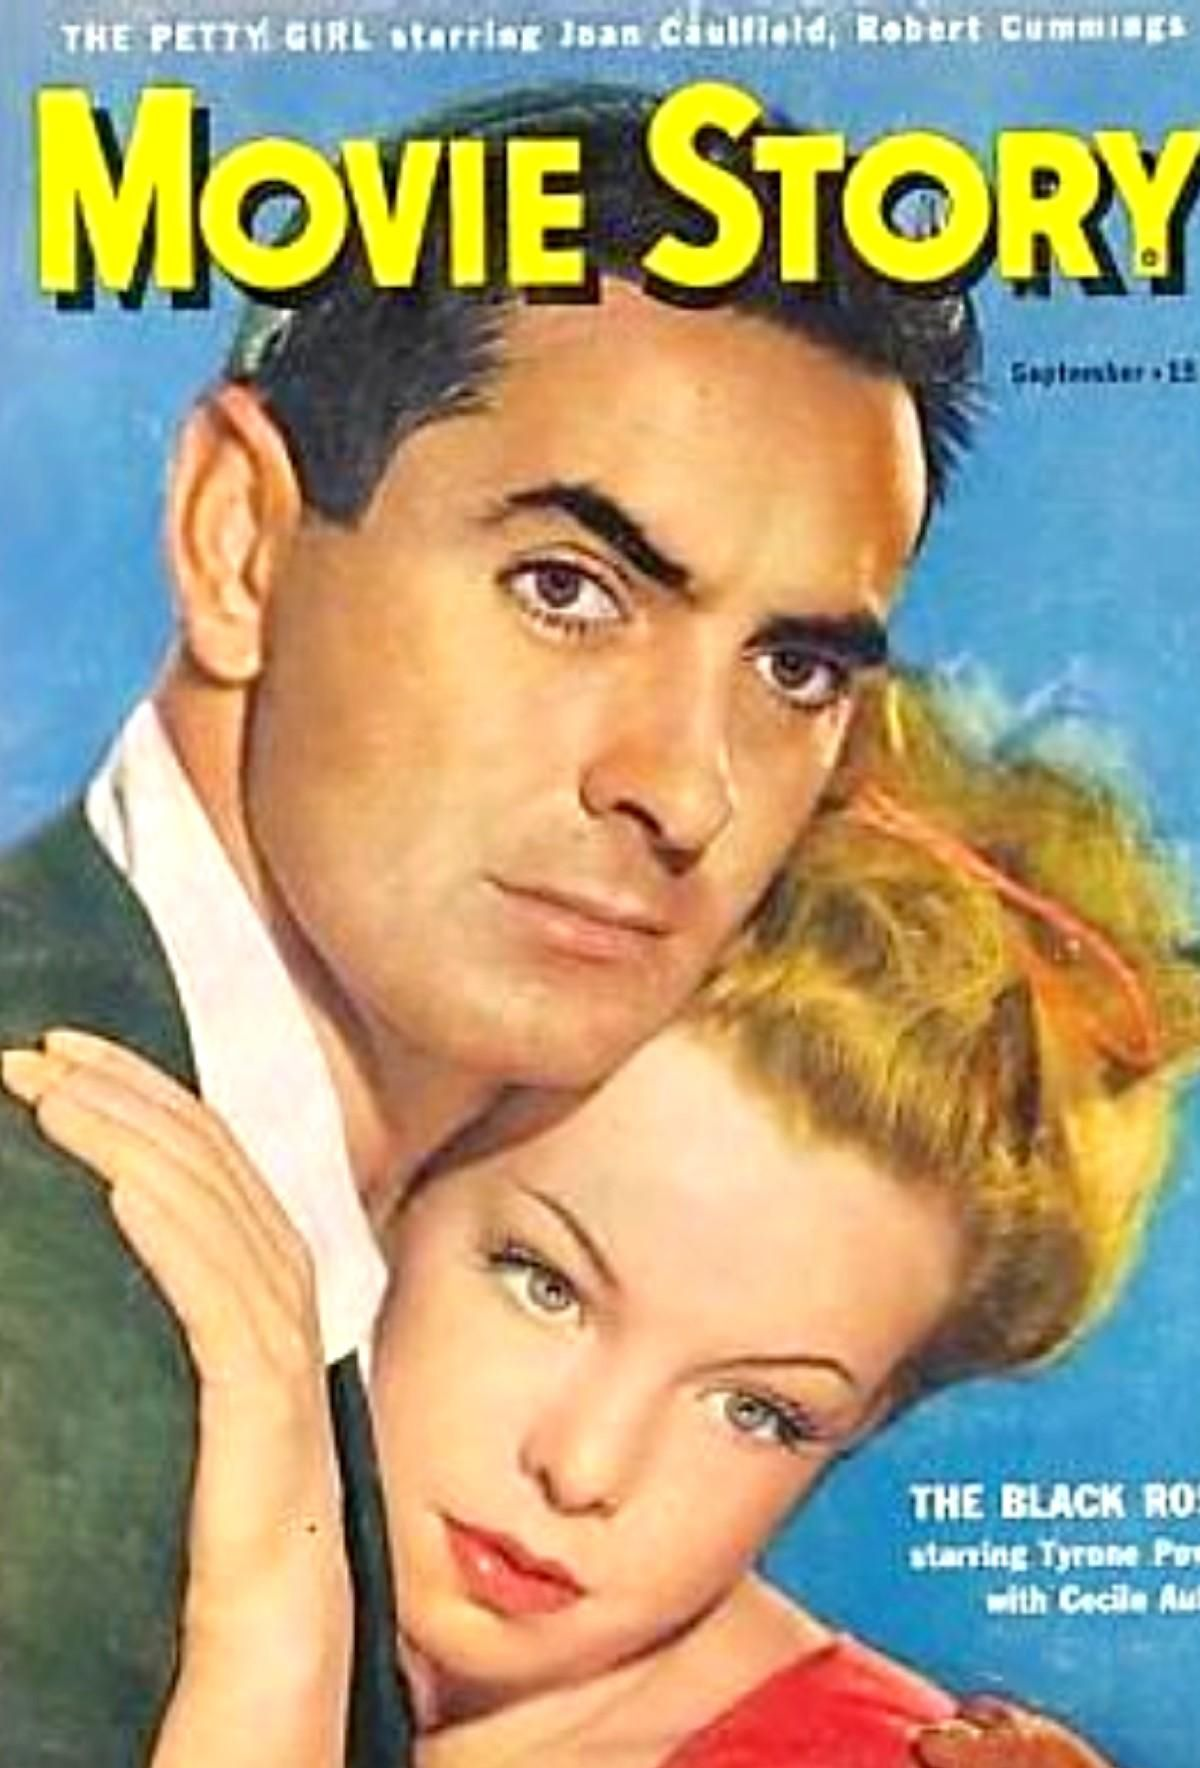 tyrone power 1950 movie magazines pinterest. Black Bedroom Furniture Sets. Home Design Ideas